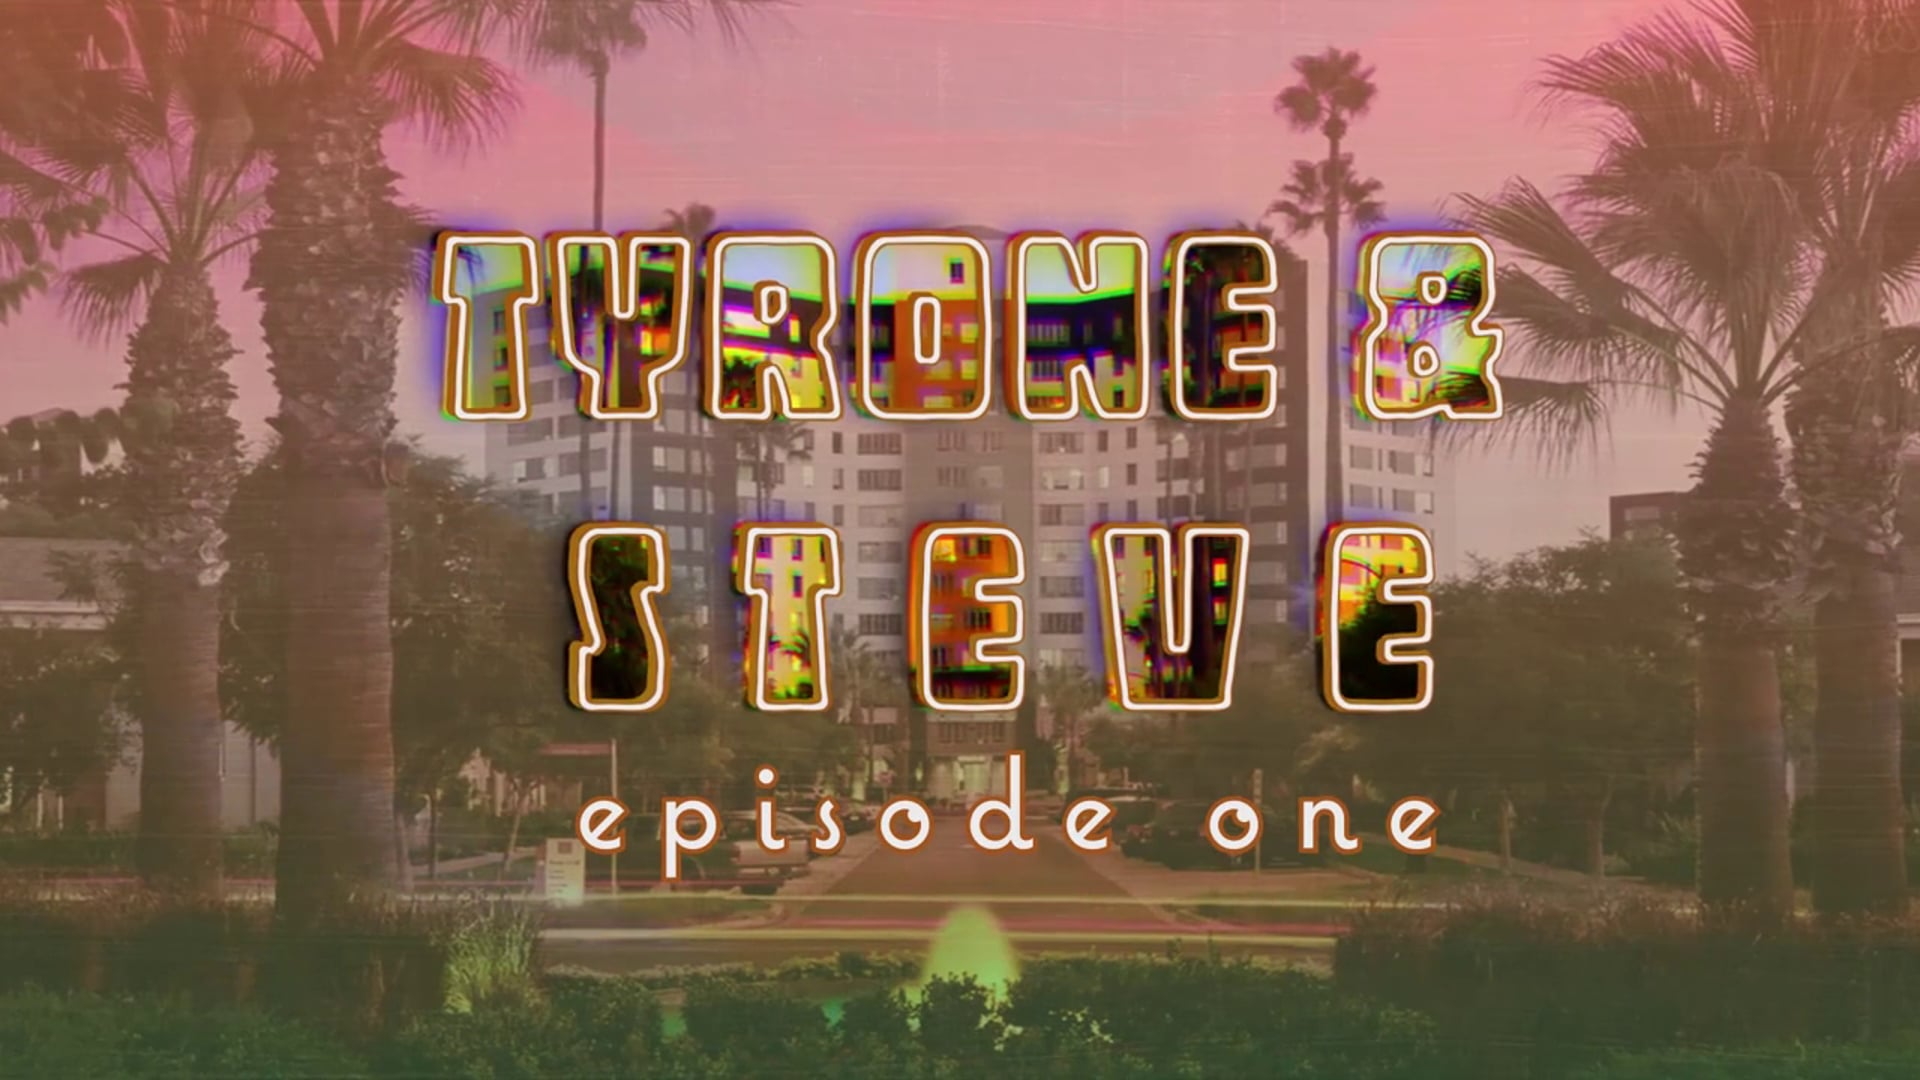 Tyrone And Steve: Episode One (Series Teaser)